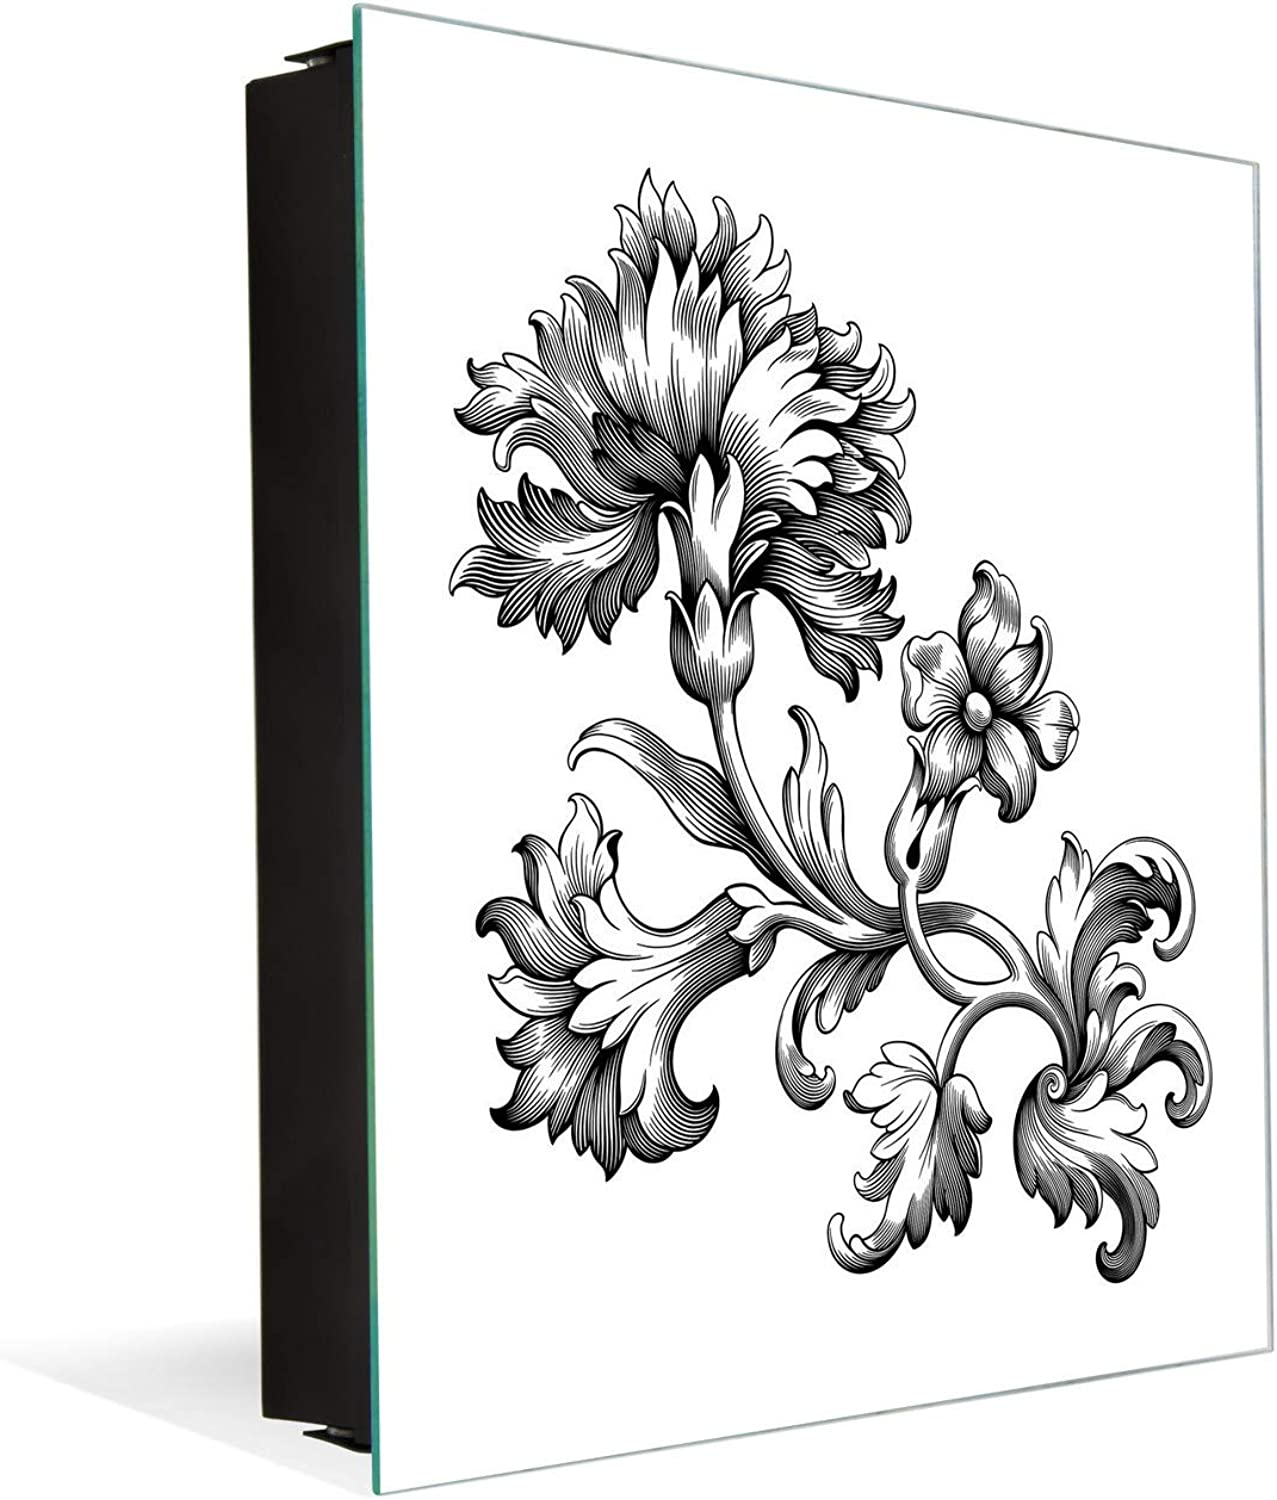 Wall Mount Key Box Together with Decorative Dry Erase Board K12 Baroque Ornament